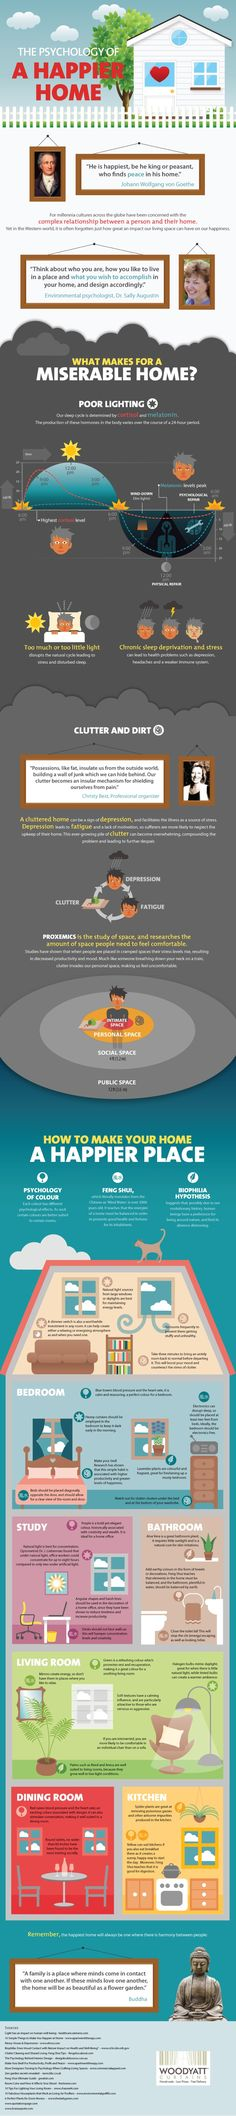 the psychology of a happy home. I love this infographic.